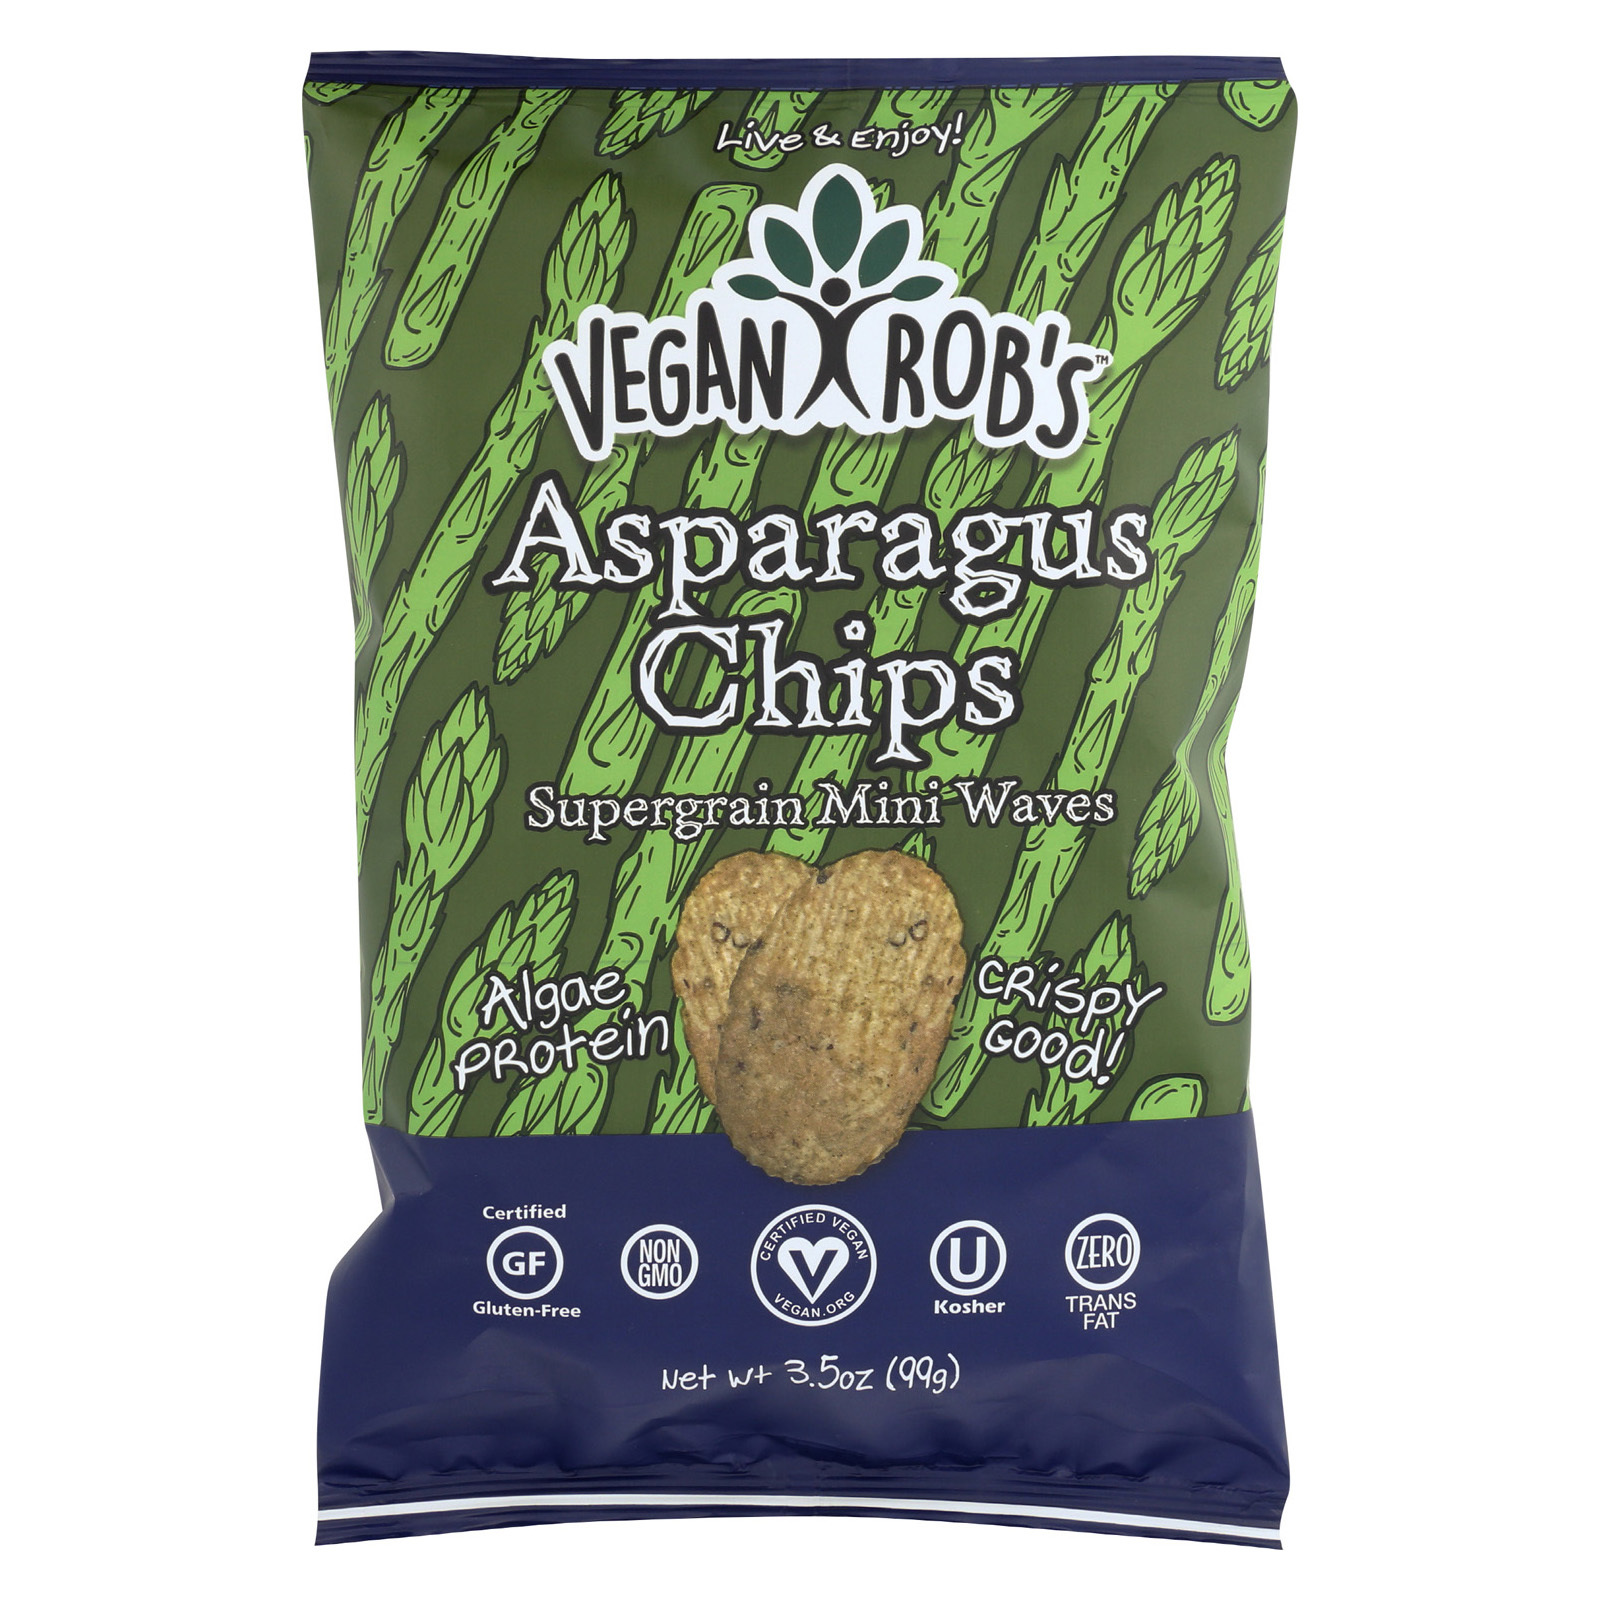 Vegan Rob's Supergrain Mini Waves Chips - Asparagus - Case of 12 - 3.5 oz